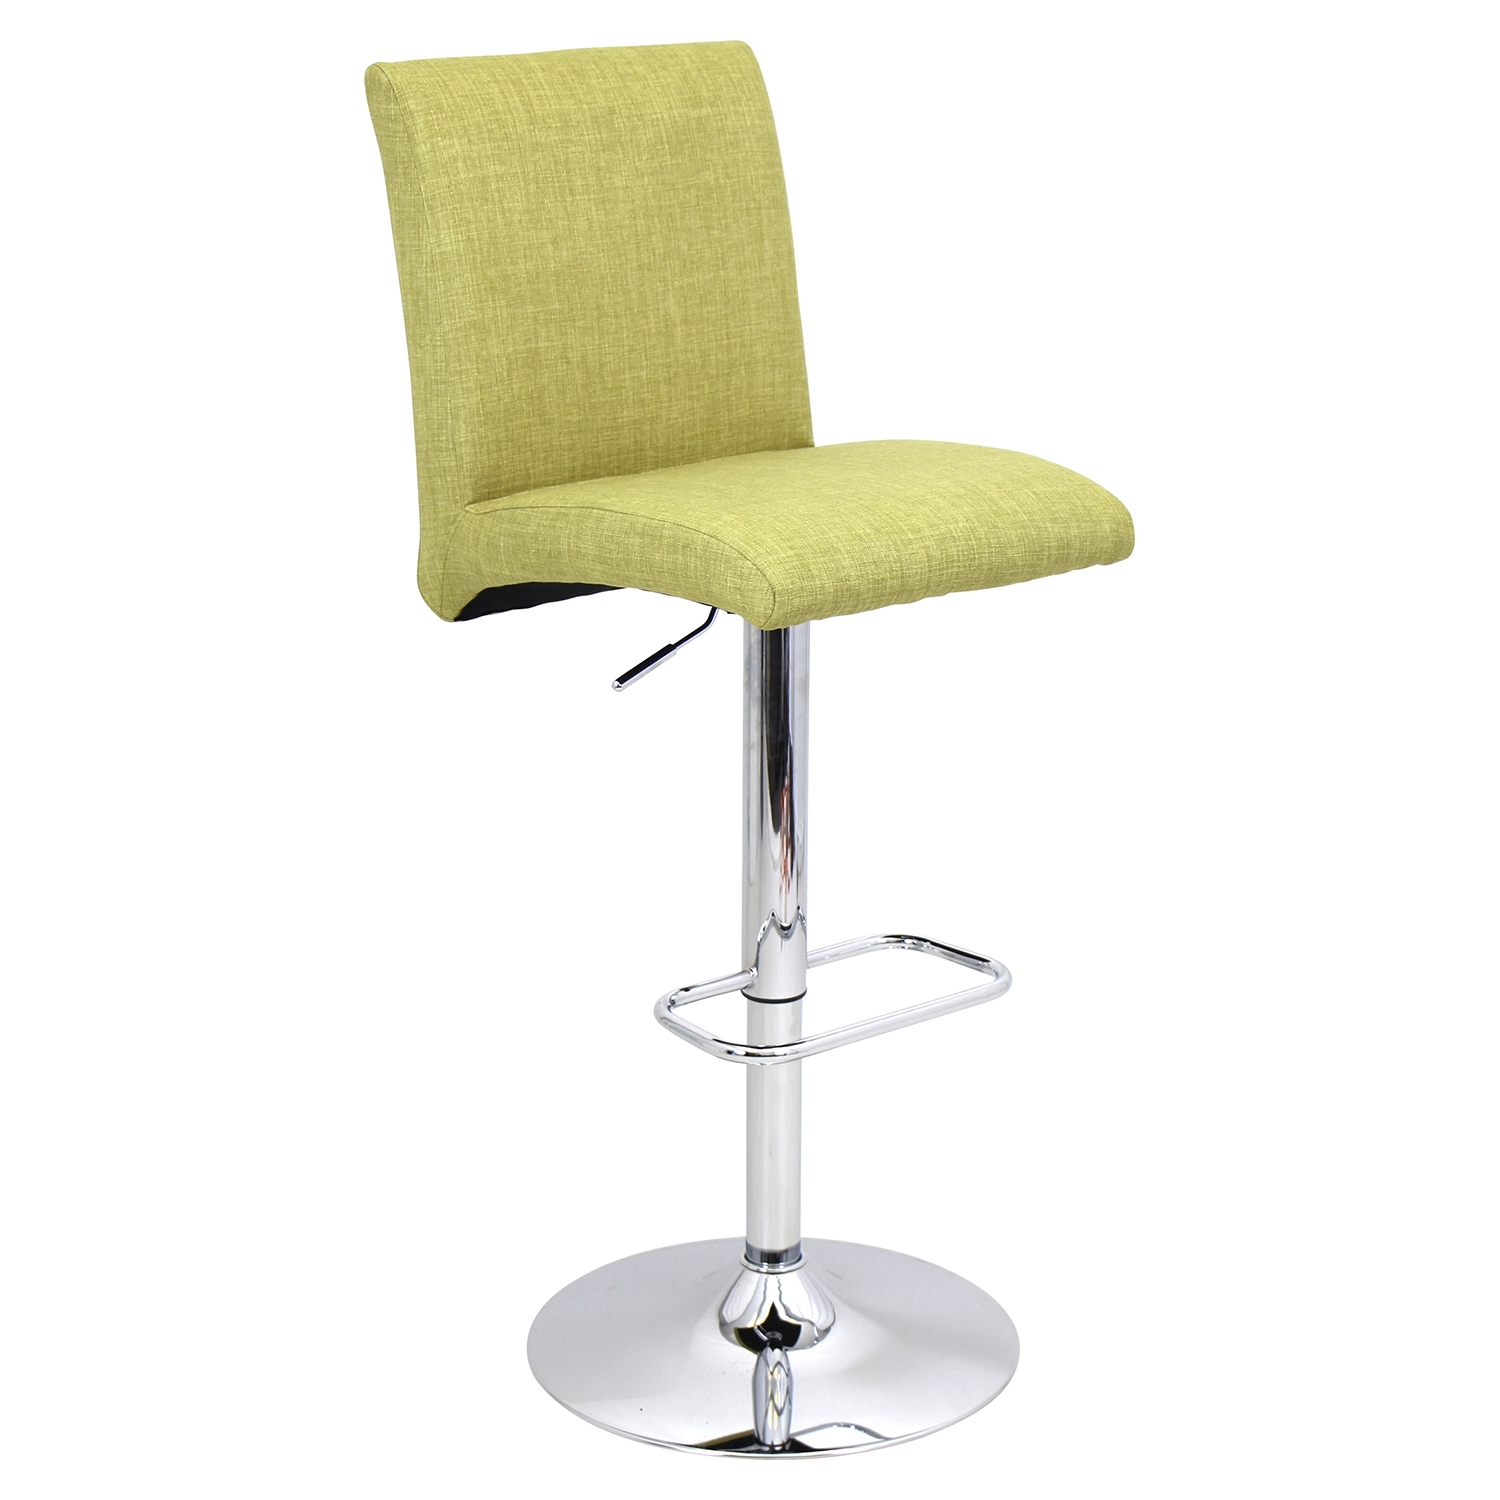 Tintori Height Adjustable Barstool - Swivel, Green - LMS-BS-JY-TNT-GN